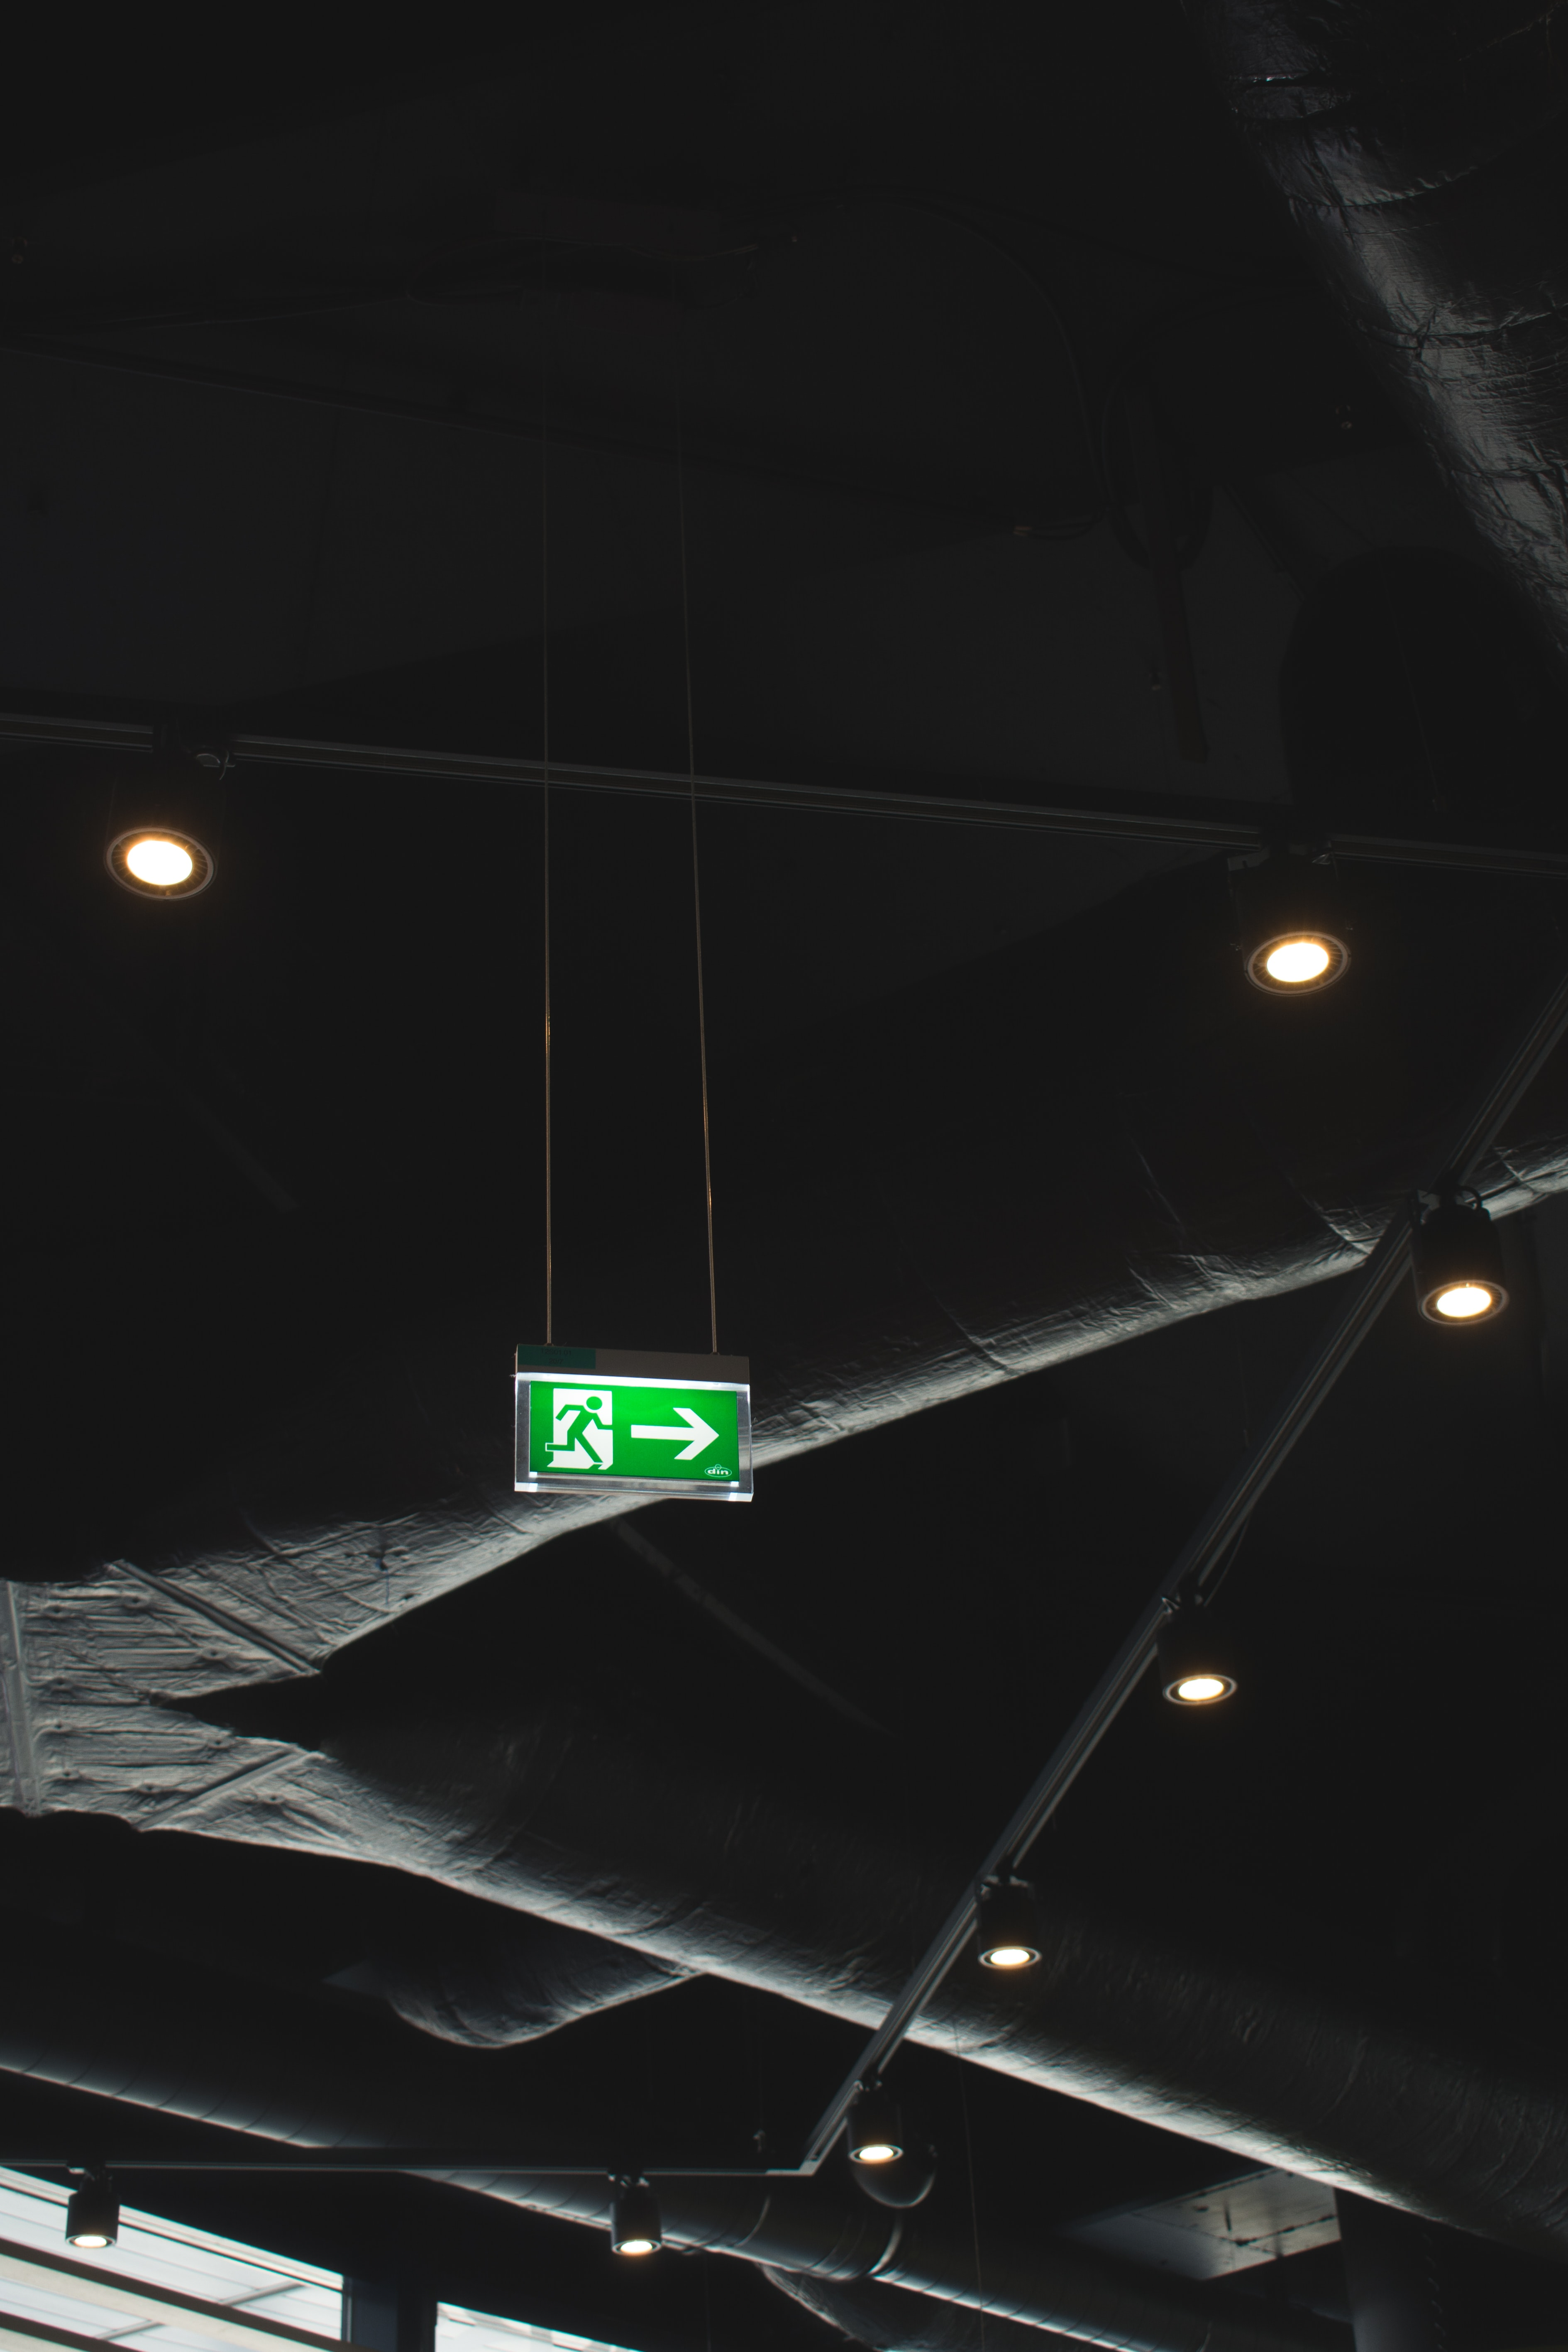 green signage on ceiling